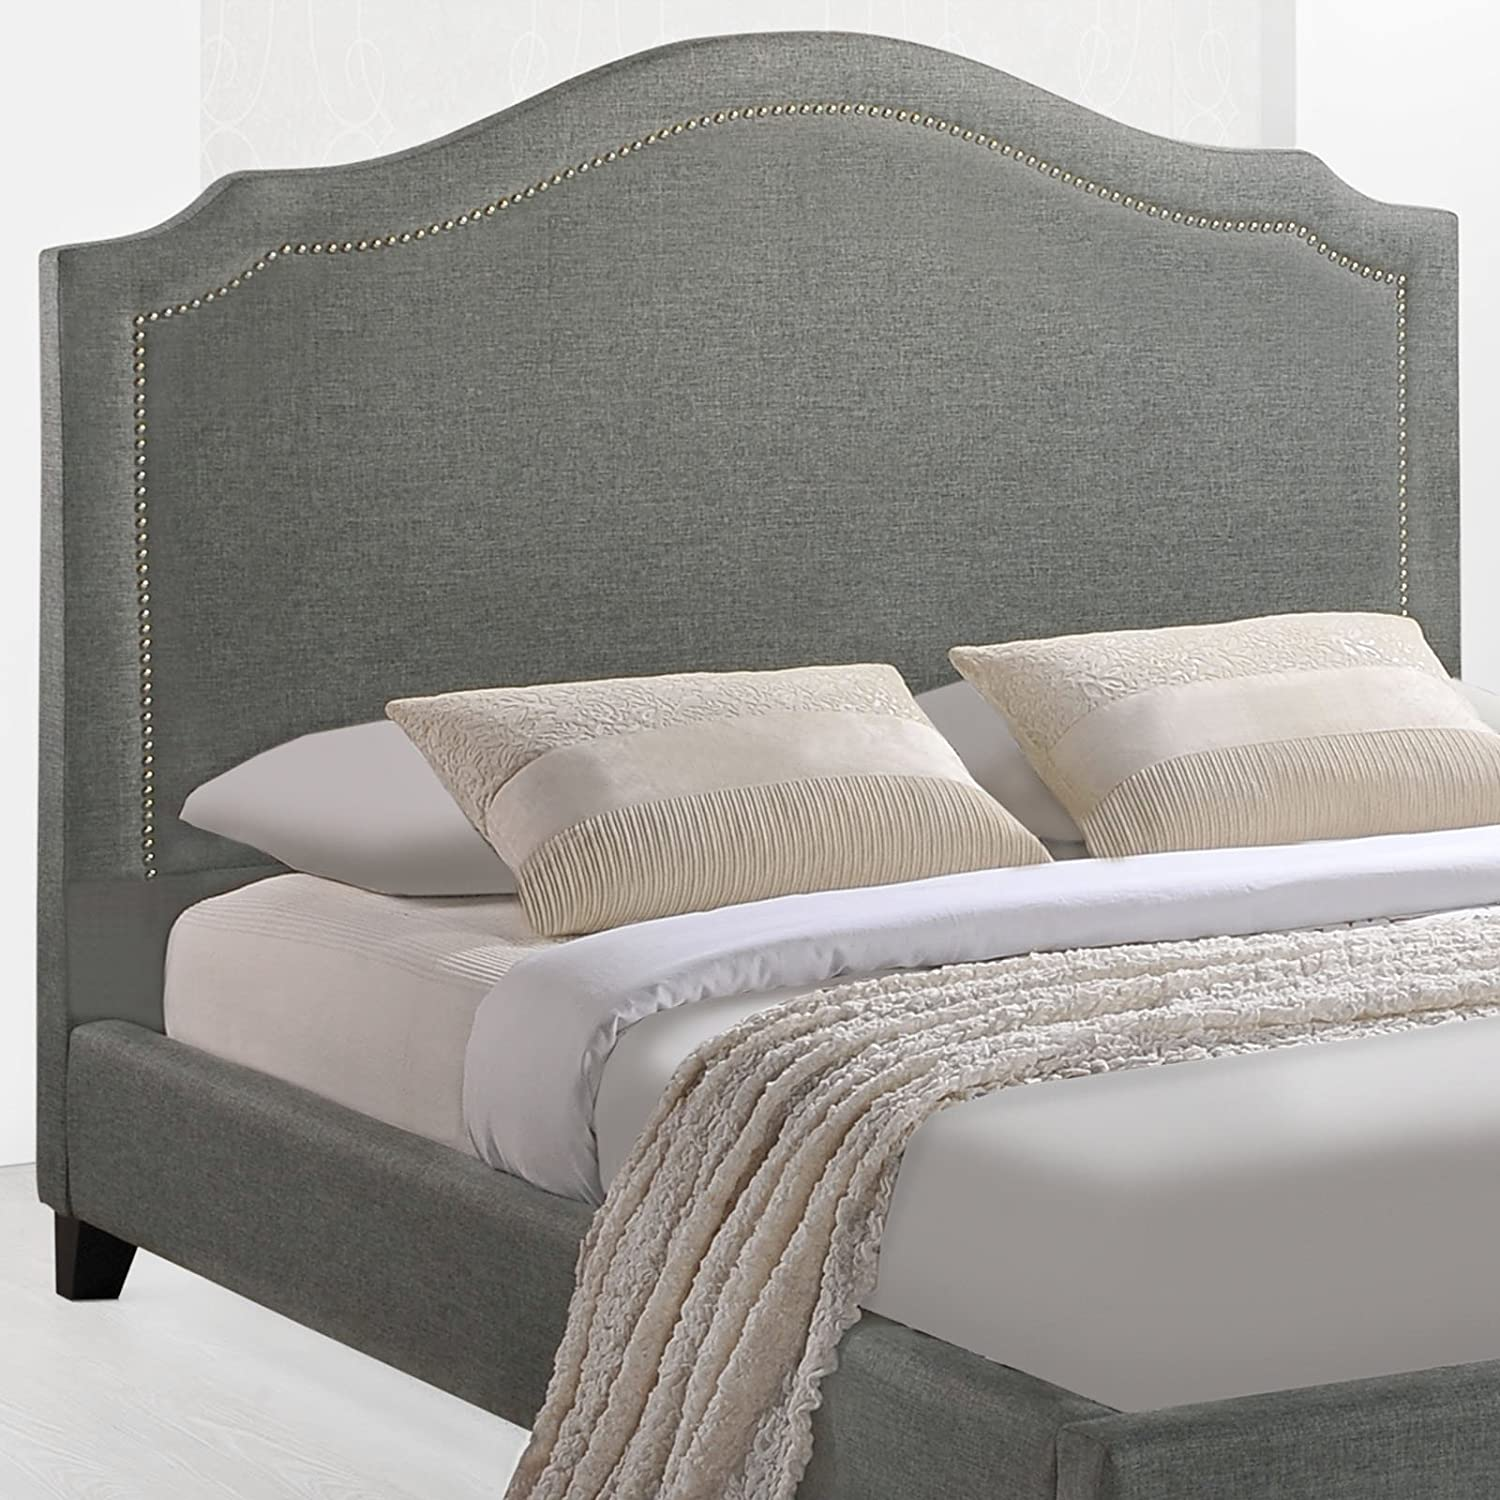 Amazon.com: Modway Charlotte Upholstered Fabric Queen Bed With ...